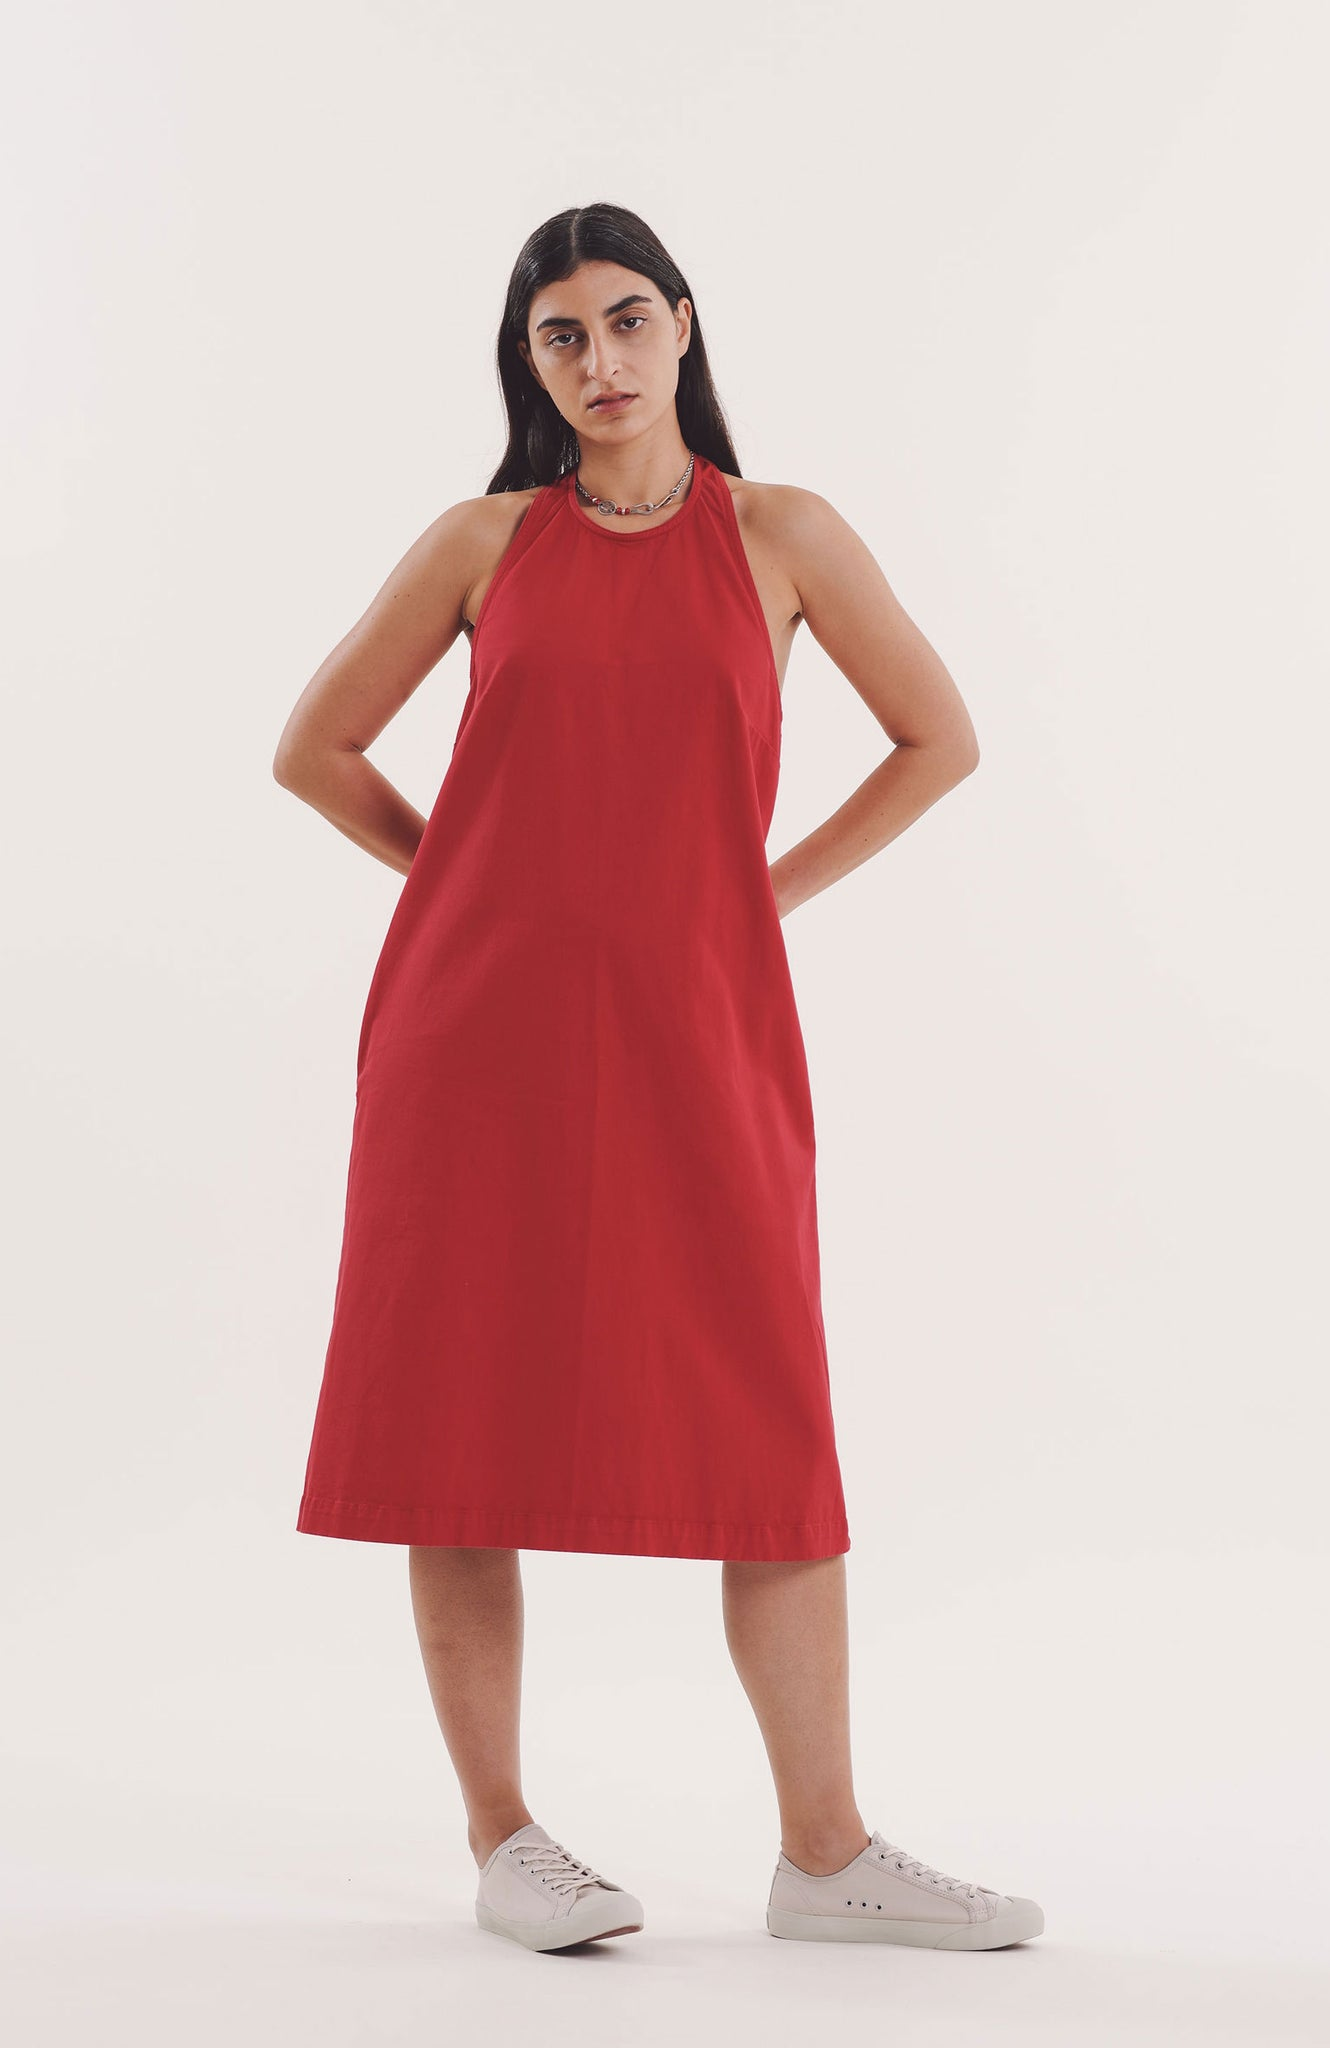 Apron Dress in Red